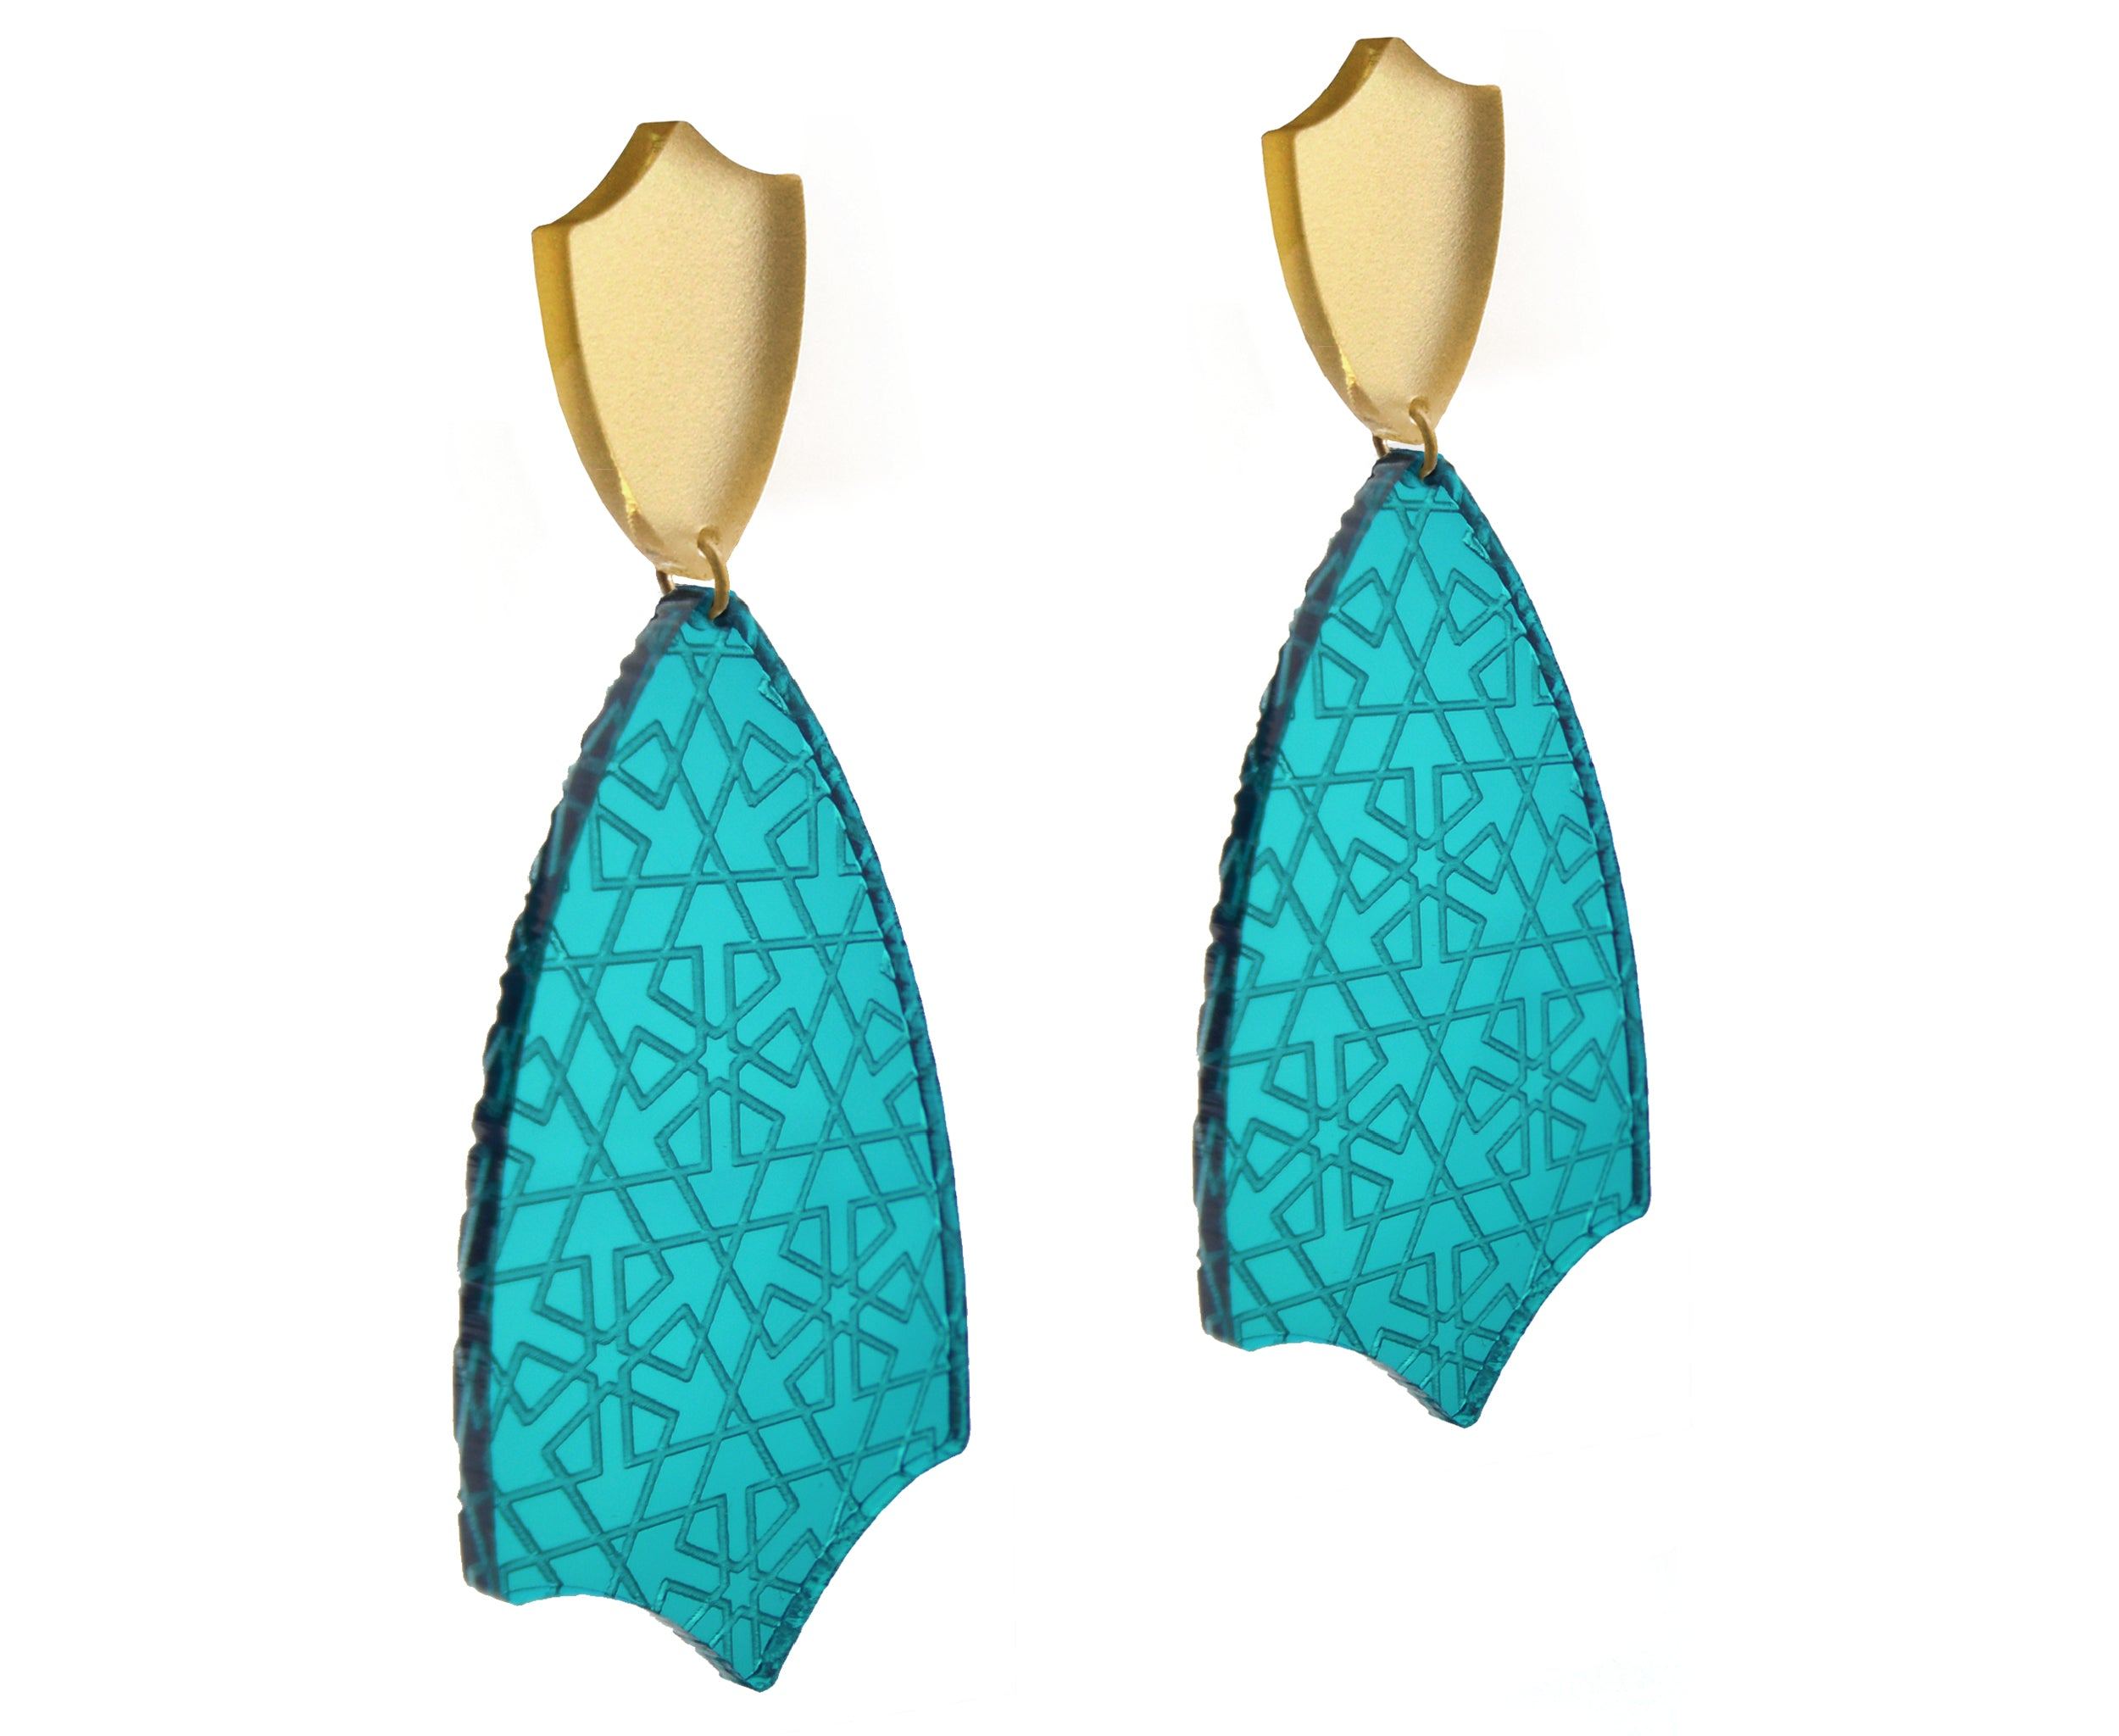 Teal & Gold Etched Tulip Earrings